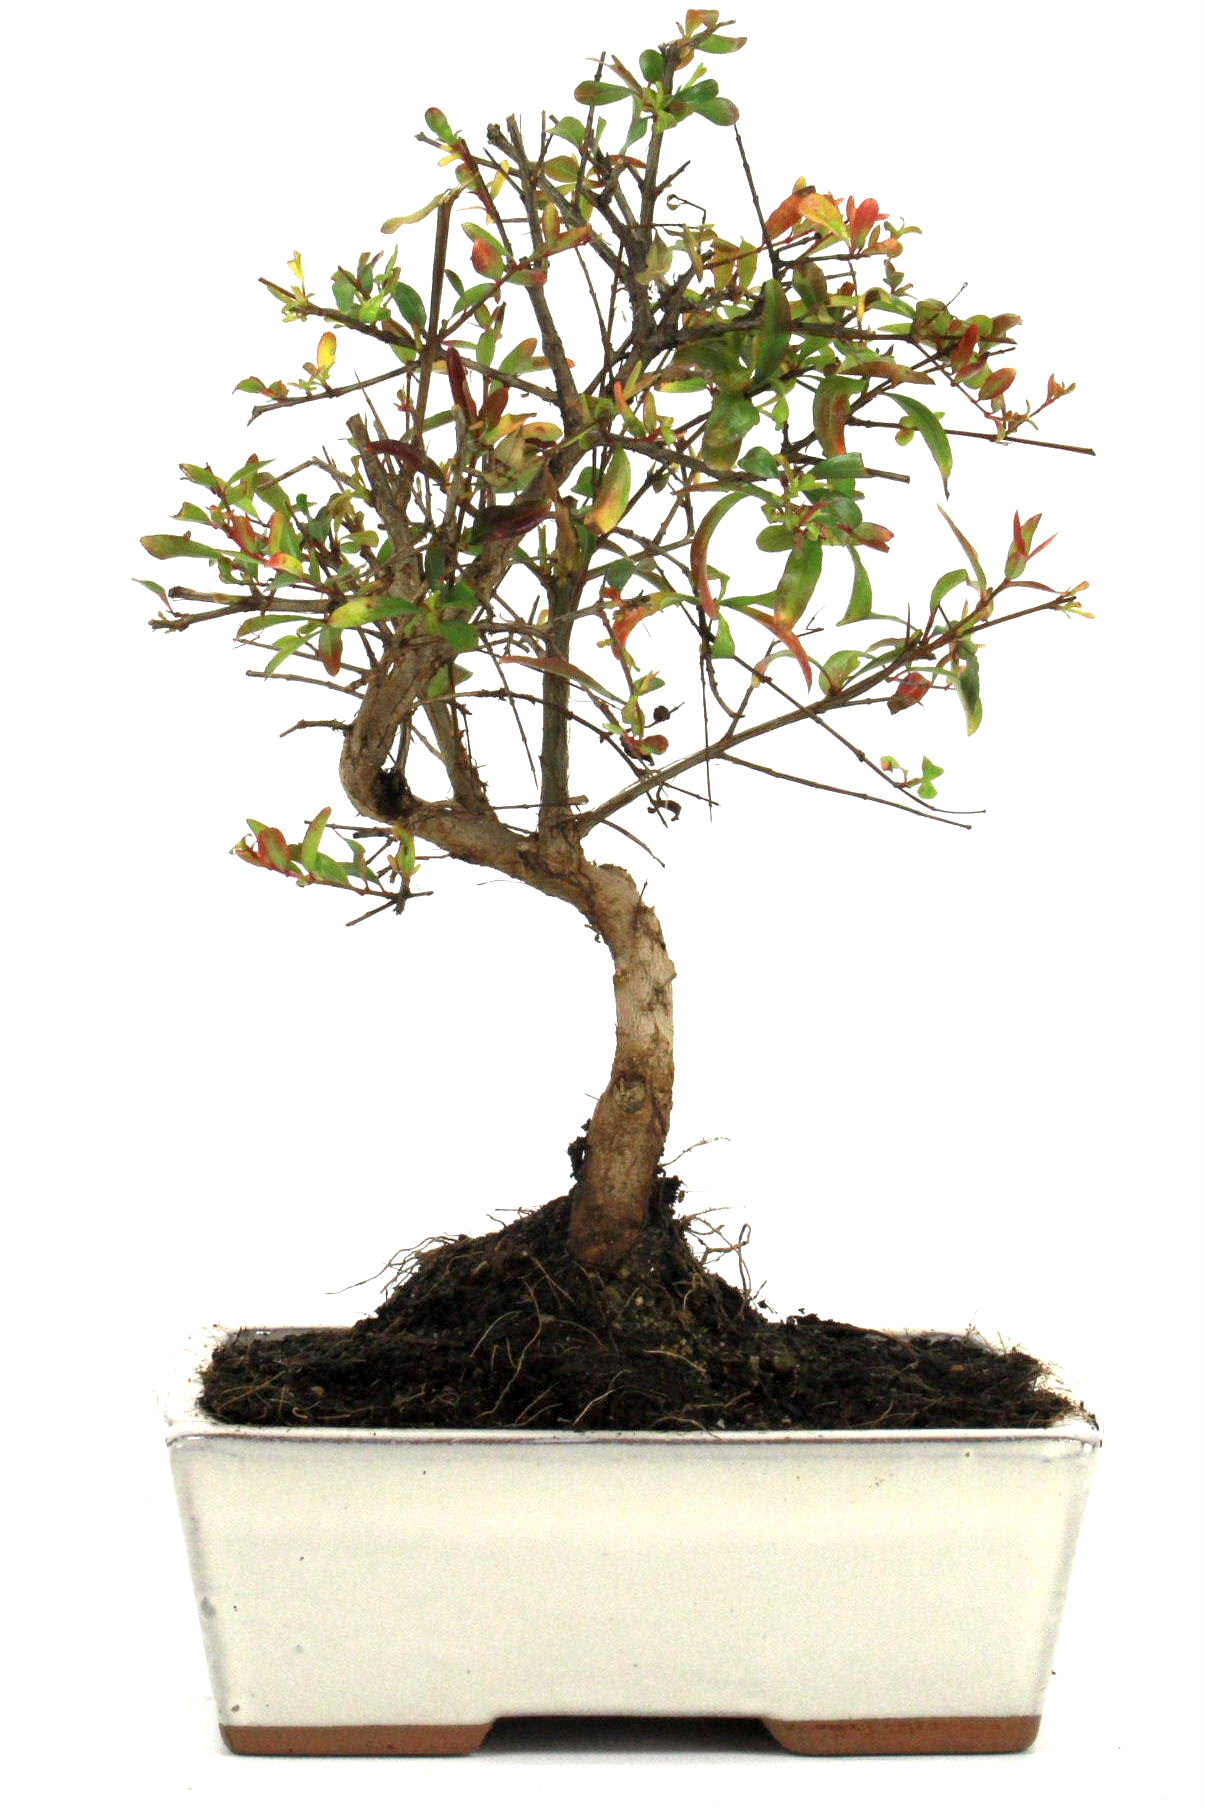 Granatapfel bonsai 25 30 cm 1622 bei oyaki bonsai kaufen for Bonsai onlineshop